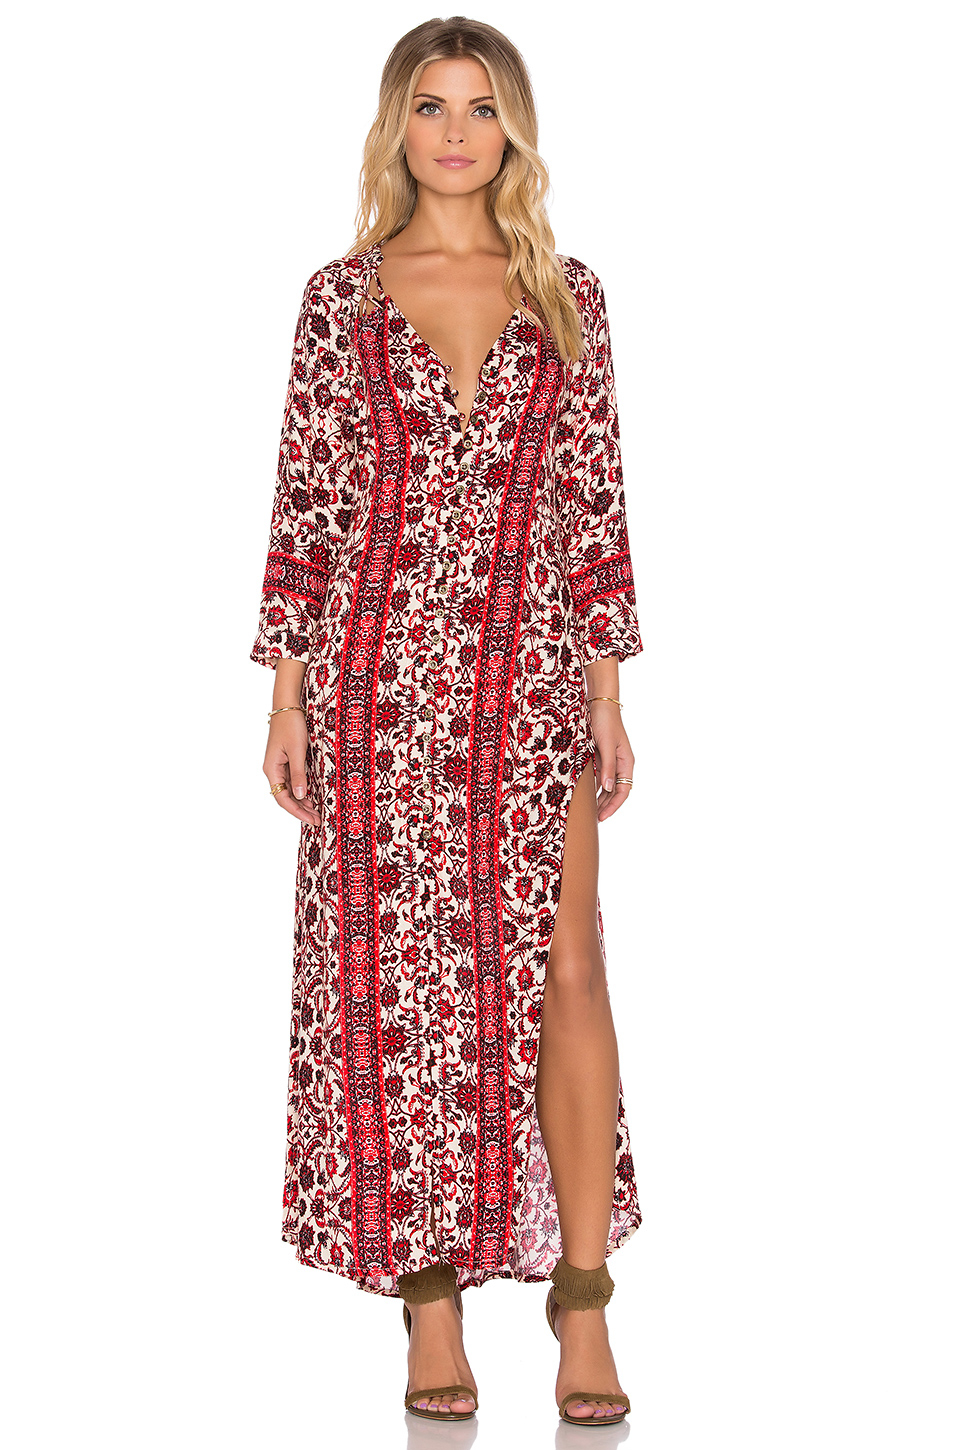 Gypsy 05 Printed Lace Maxi Dress in White | Lyst